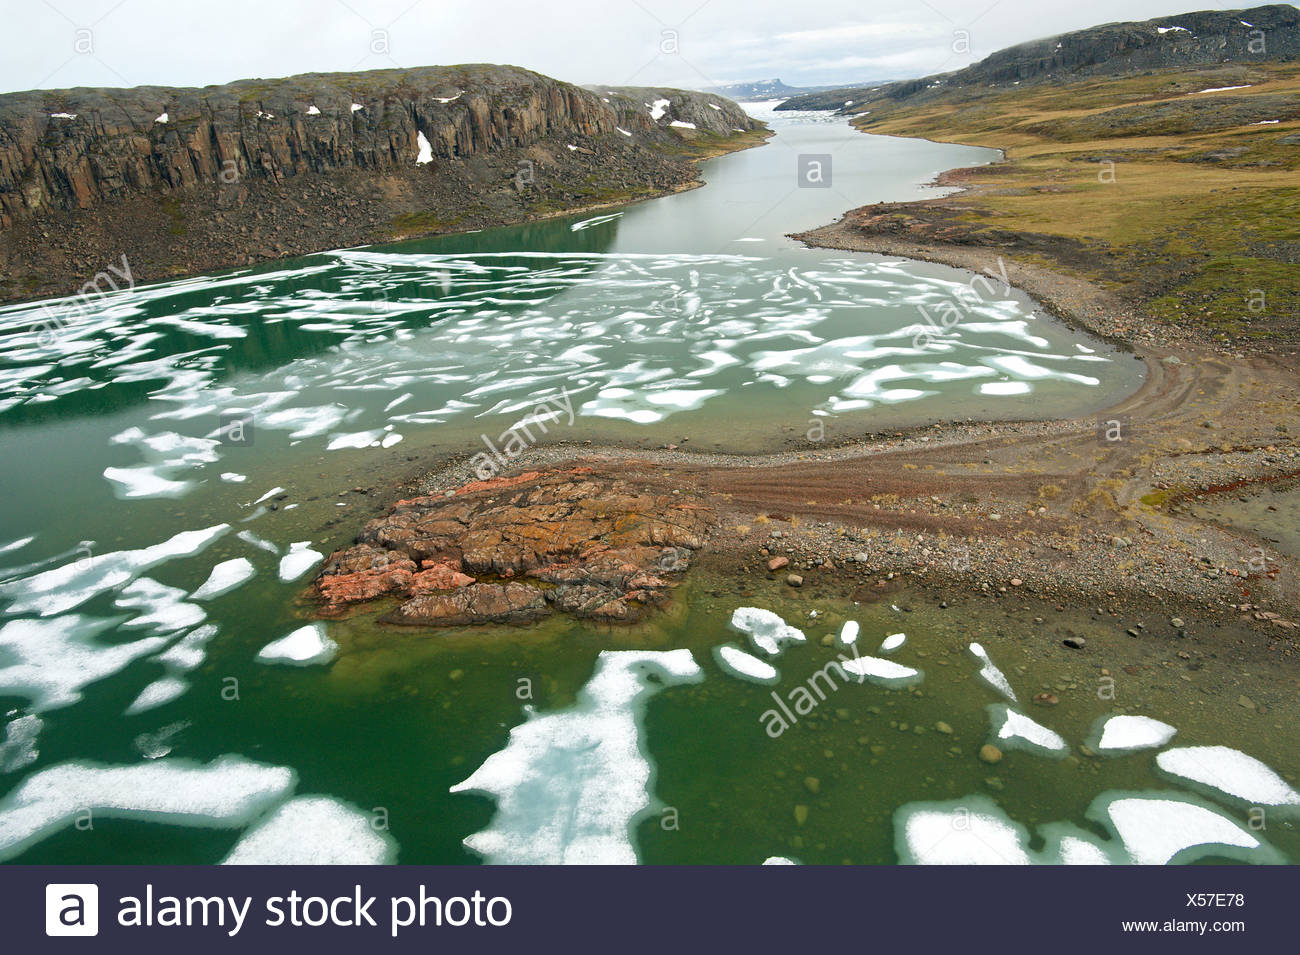 Melting ice in the Arctic Ocean with shoreline features, Coronation Gulf, Nunavut - Stock Image